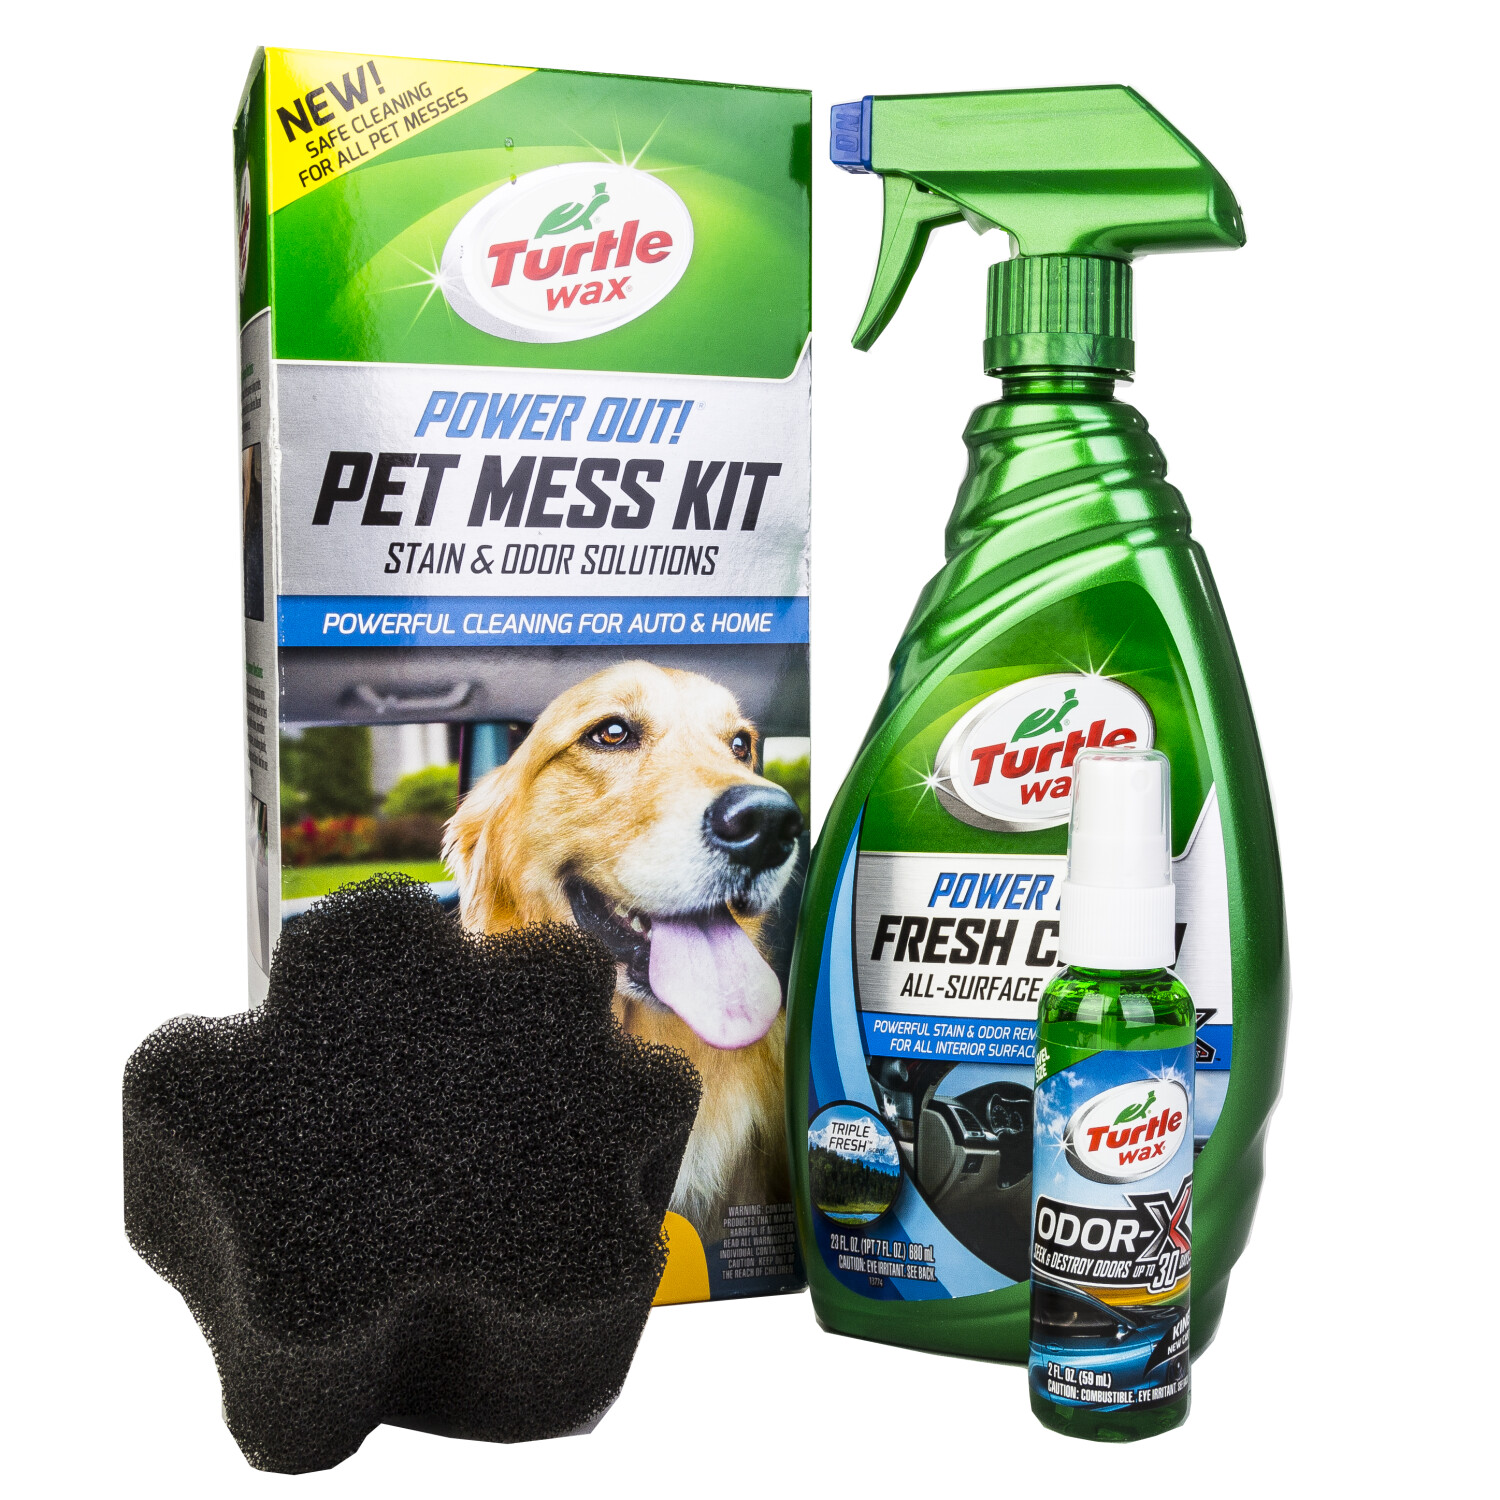 Turtle Wax Power Out! Pet Mess Kit Powerful Cleaning for Auto, Truck and Home - Green